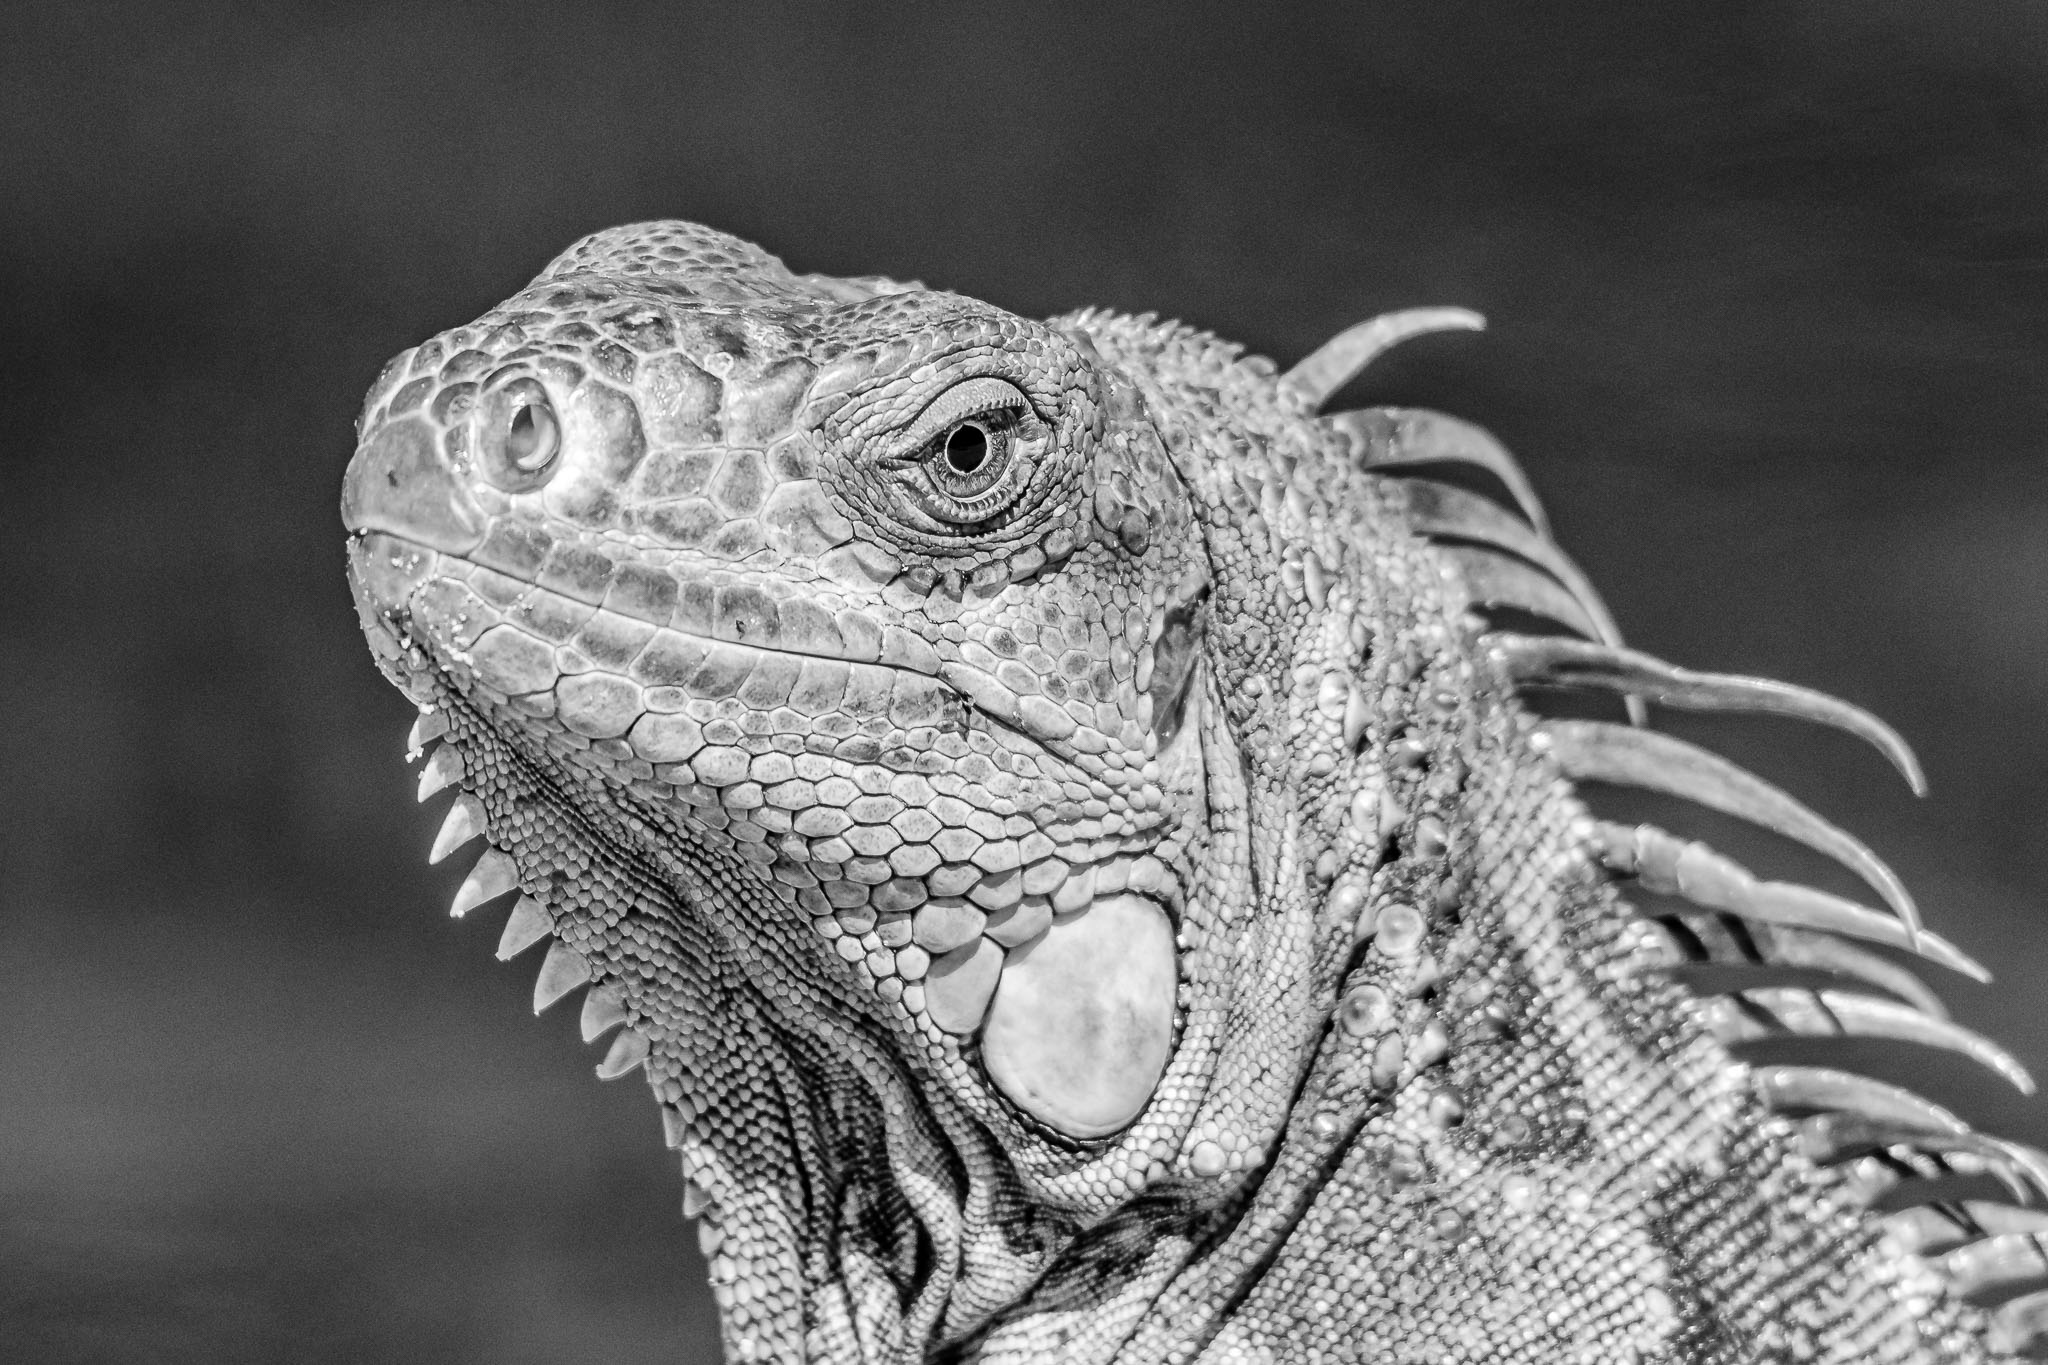 The scaly skin of reptiles just makes black and white photos the obvious choice. I love the way the black and white makes the detail in the skin stand out.